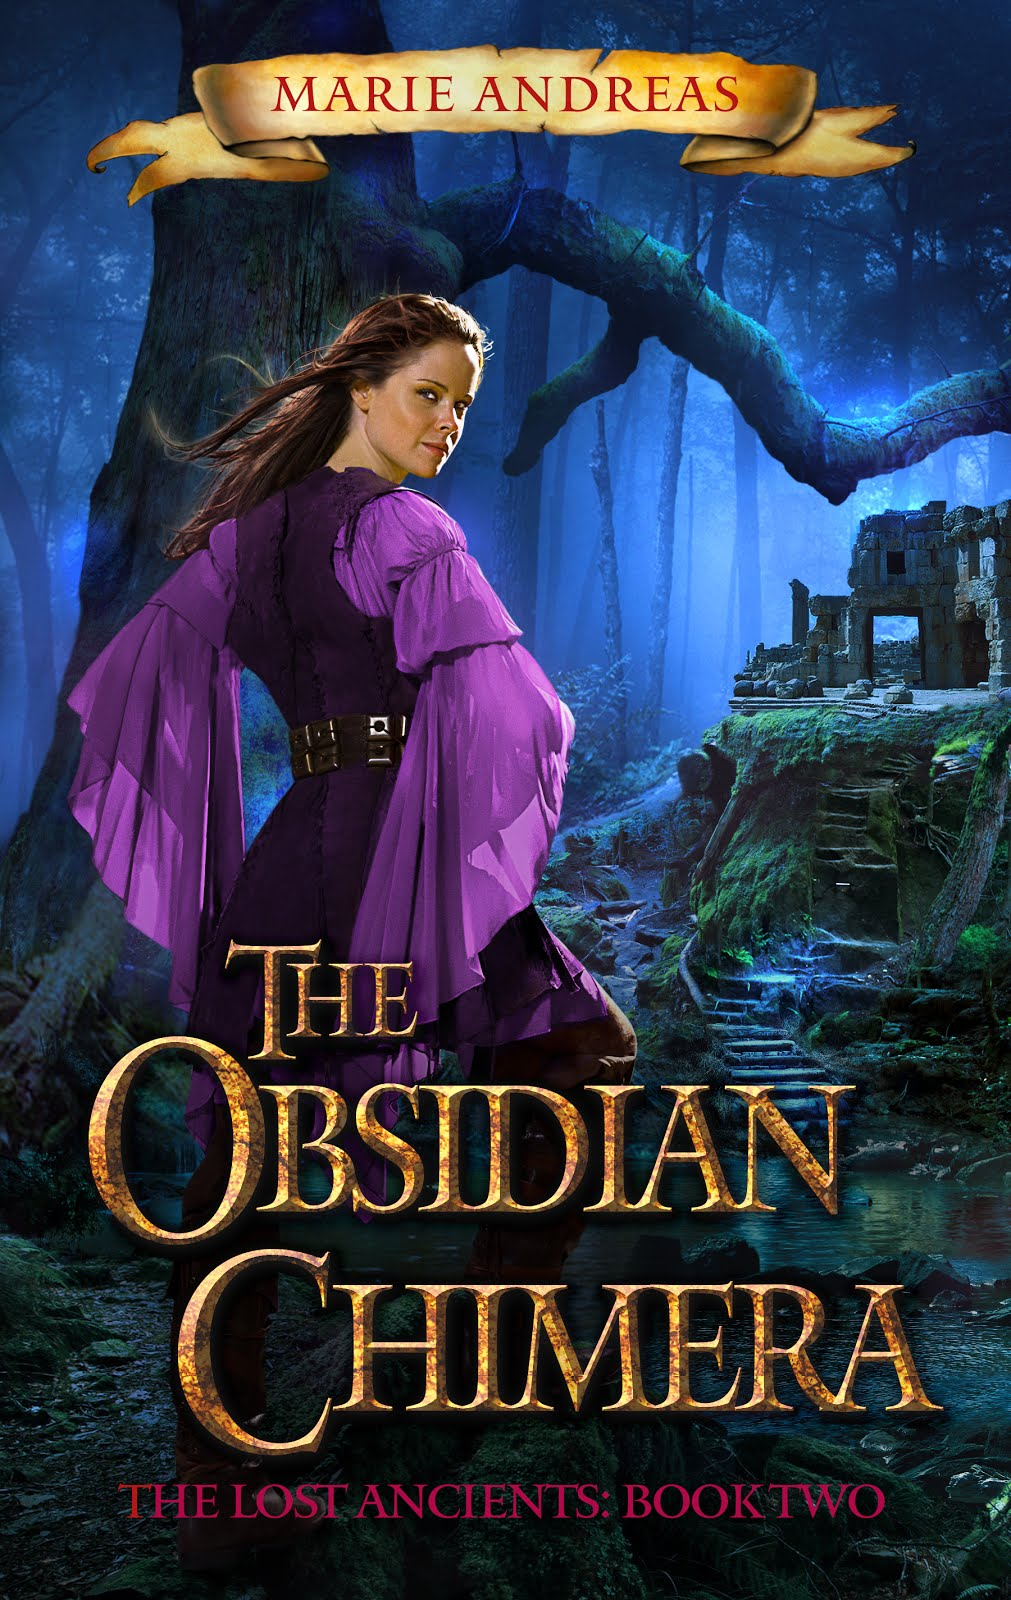 The Obsidian Chimera-The Lost Ancients